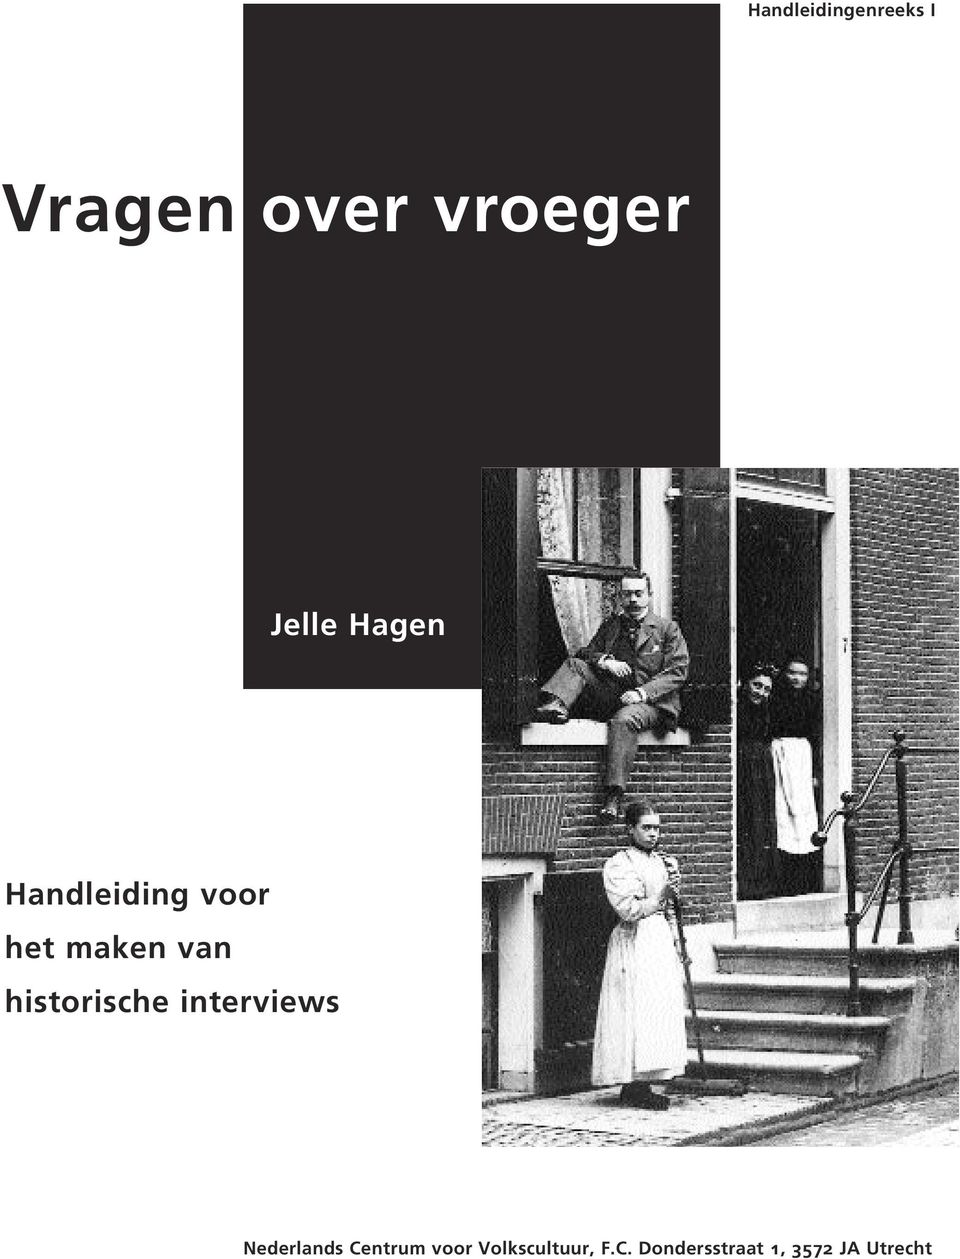 historische interviews Nederlands Centrum